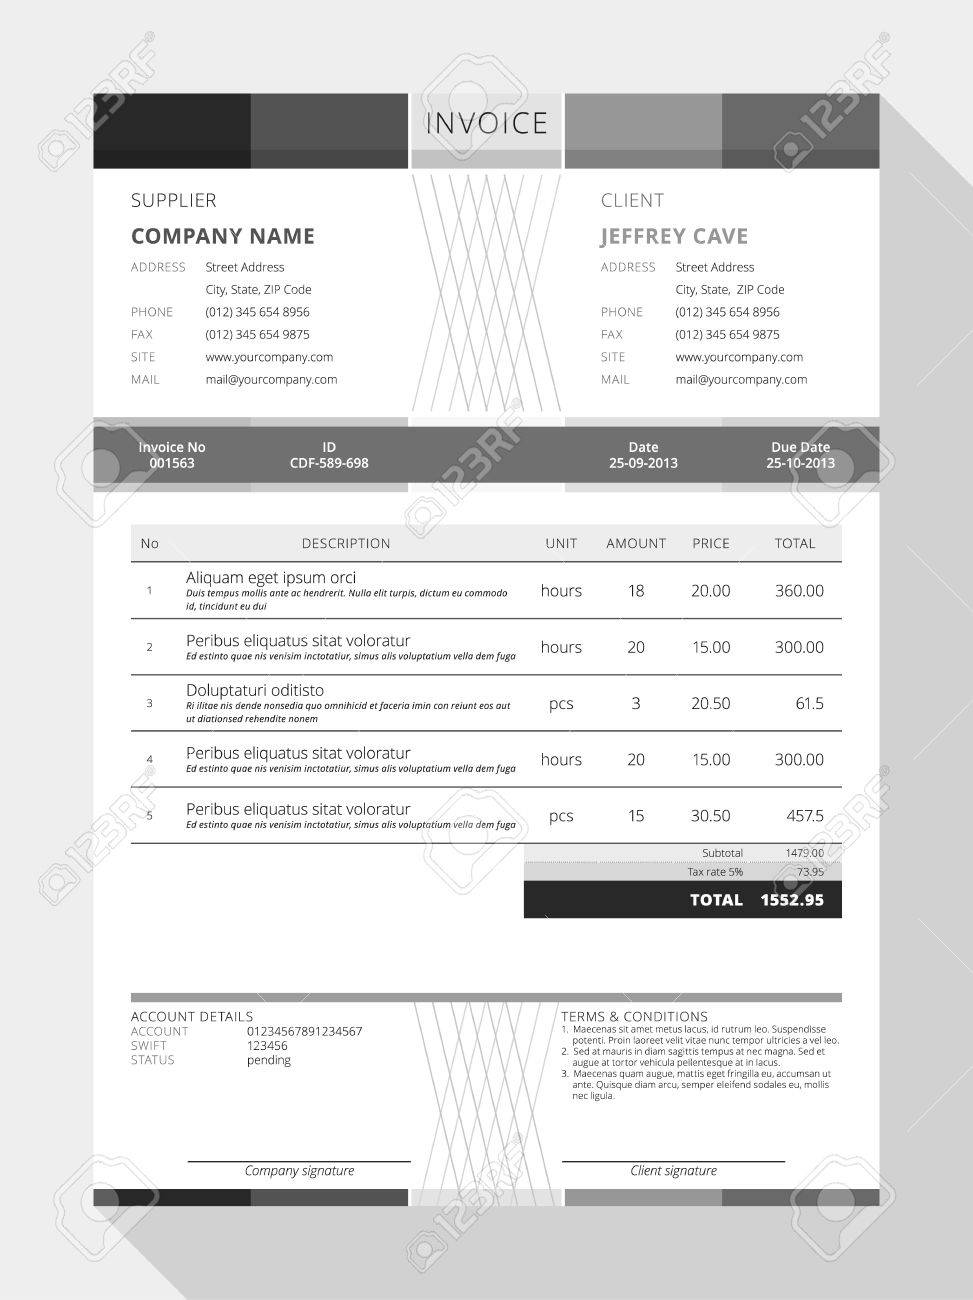 Maidofhonortoastus  Stunning Design An Invoice  Professional Graphic Design Invoice  With Handsome Vector Customizable Invoice Form Template Design Vector   Design An Invoice With Cool Payment Terms On An Invoice Also Invoice Generator Pdf In Addition Excel Invoices Templates Free And Invoices Management As Well As What Is Meant By Proforma Invoice Additionally Invoice And Proforma Invoice From Happytomco With Maidofhonortoastus  Handsome Design An Invoice  Professional Graphic Design Invoice  With Cool Vector Customizable Invoice Form Template Design Vector   Design An Invoice And Stunning Payment Terms On An Invoice Also Invoice Generator Pdf In Addition Excel Invoices Templates Free From Happytomco